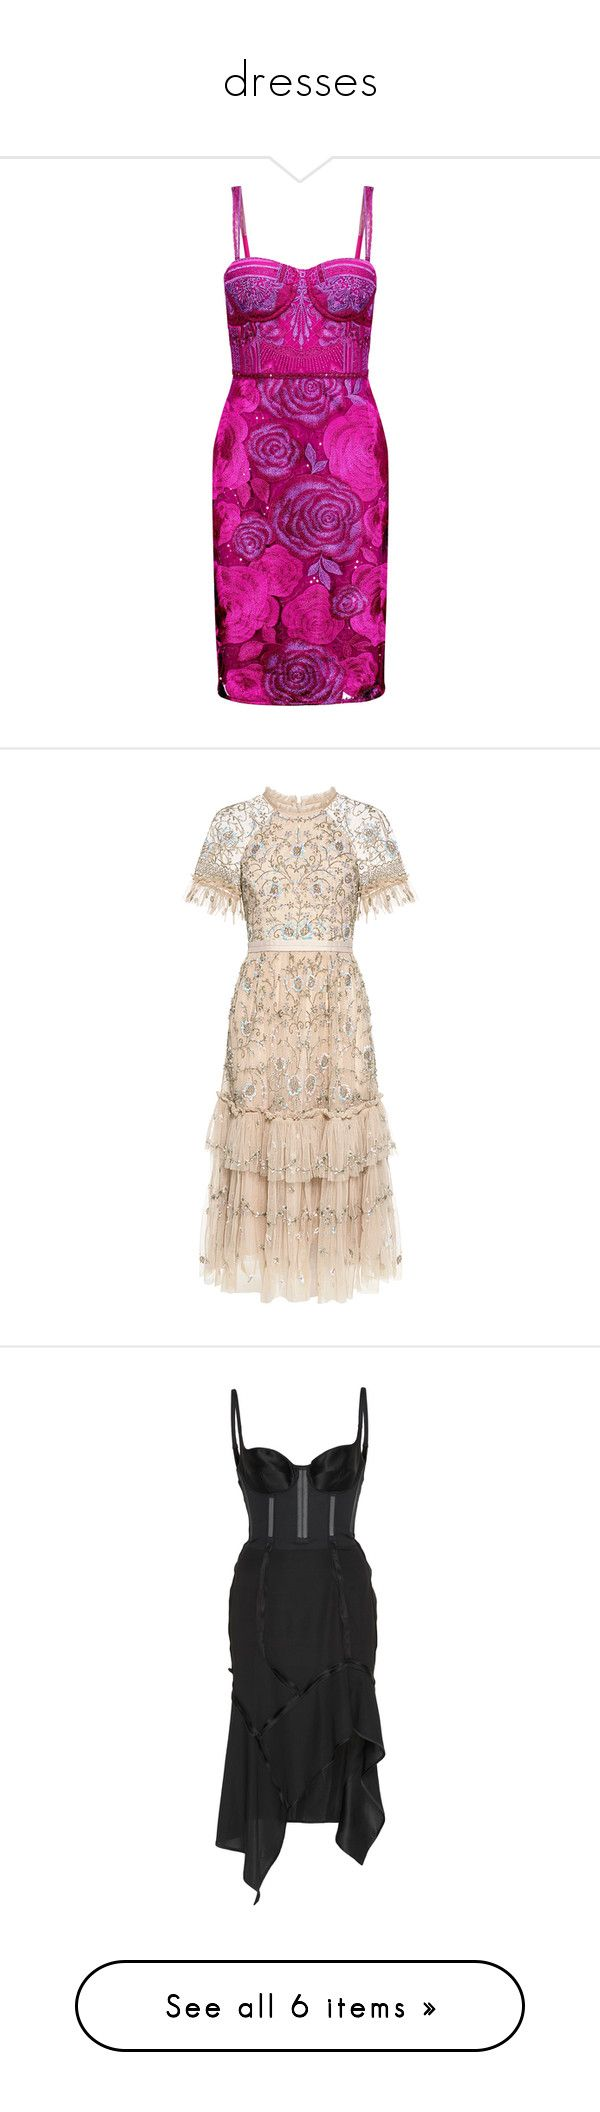 """dresses"" by daniellededwards ❤ liked on Polyvore featuring dresses, violet, metallic cocktail dress, embroidered dress, embellished dresses, embellished cocktail dresses, sequin cocktail dresses, long dresses, lace cocktail dress and evening cocktail dresses"